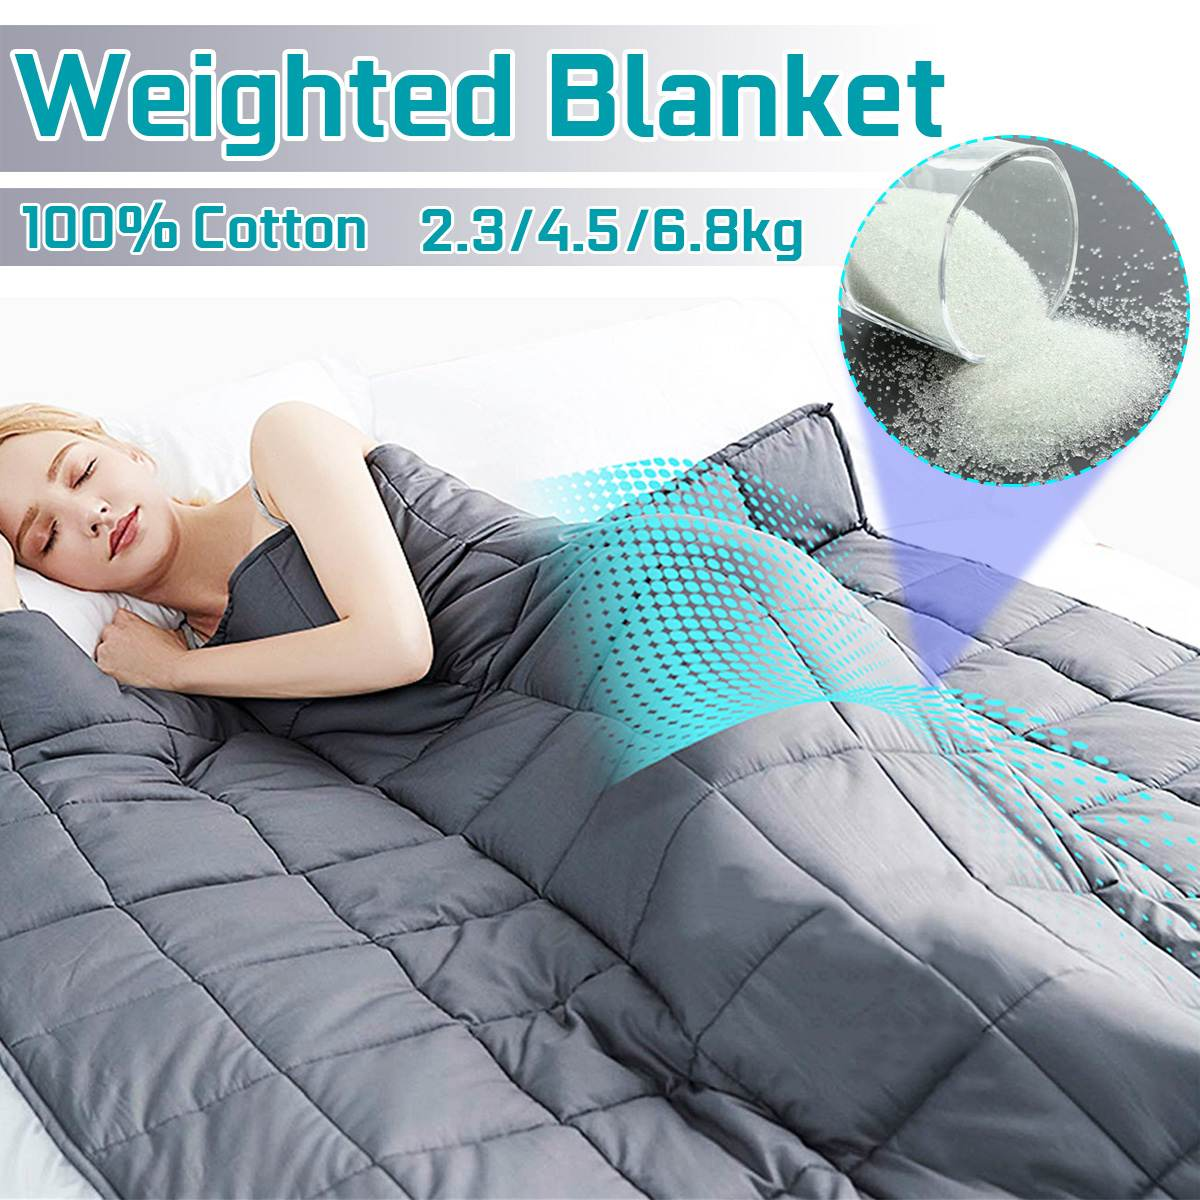 Weighted Blanket for Adult…